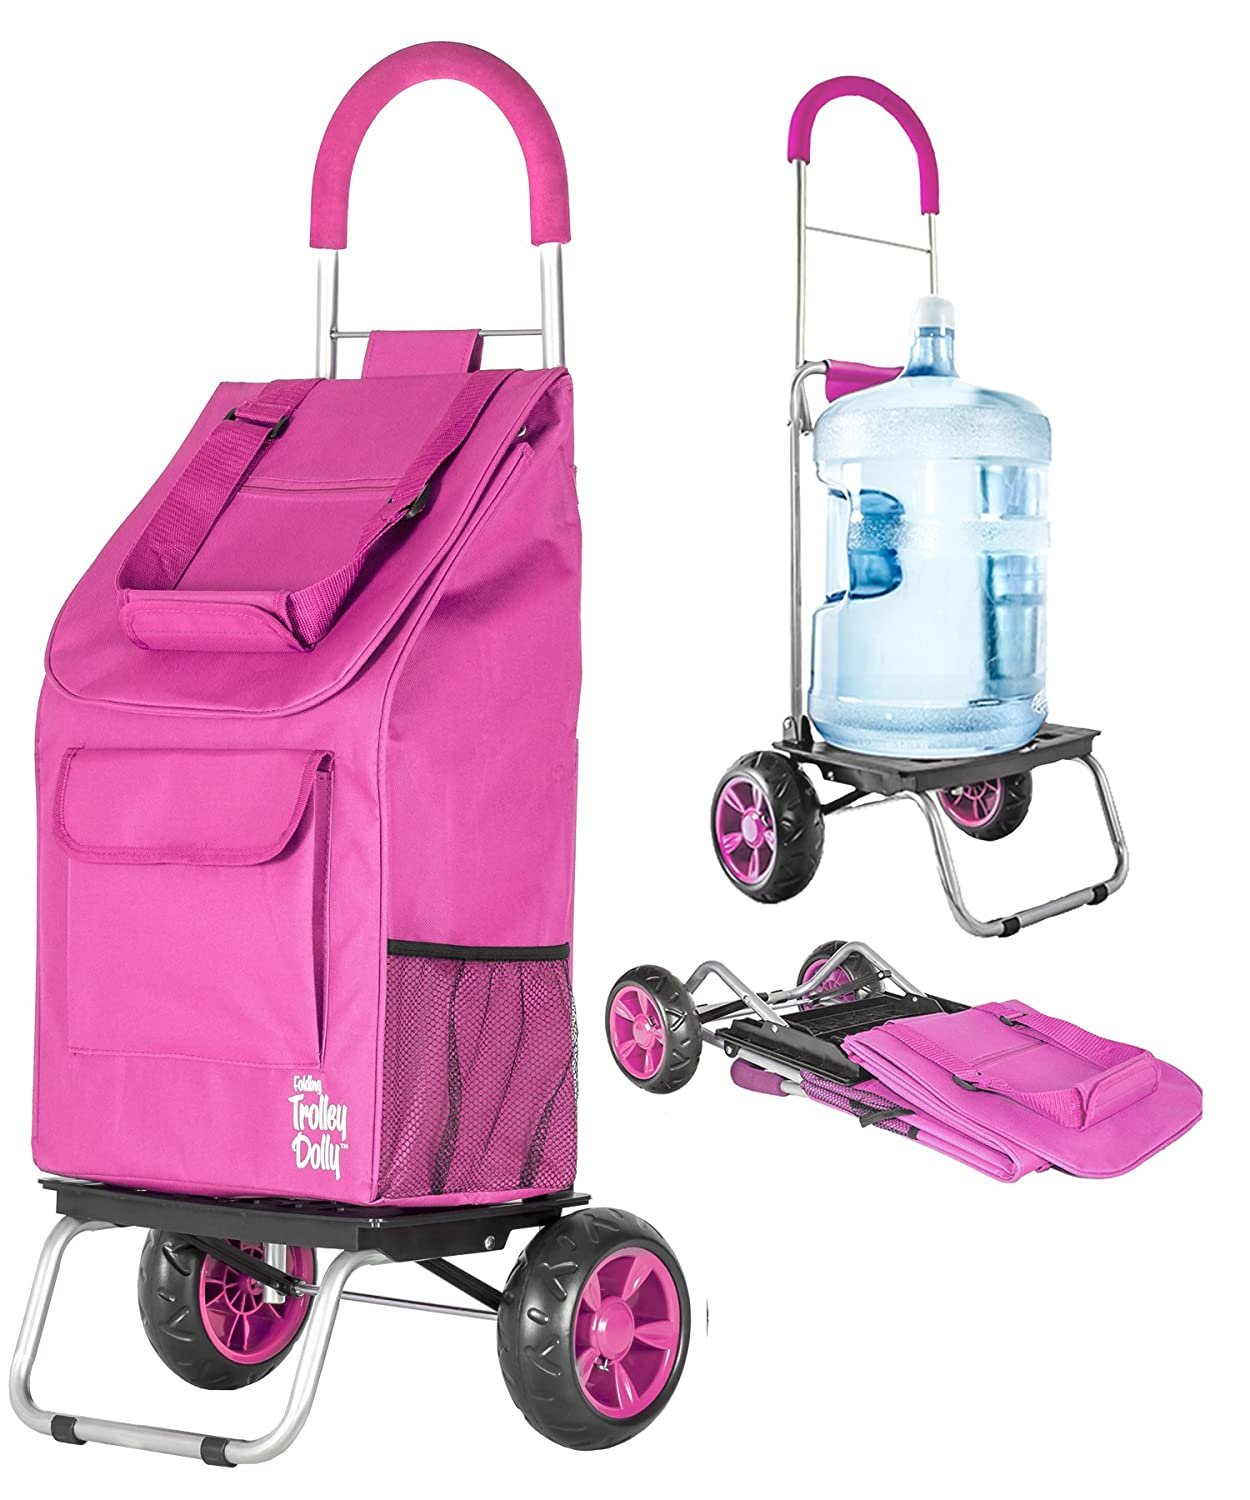 Trolley Dolly, Pink Shopping Grocery Foldable Cart dbest products Inc 01-610